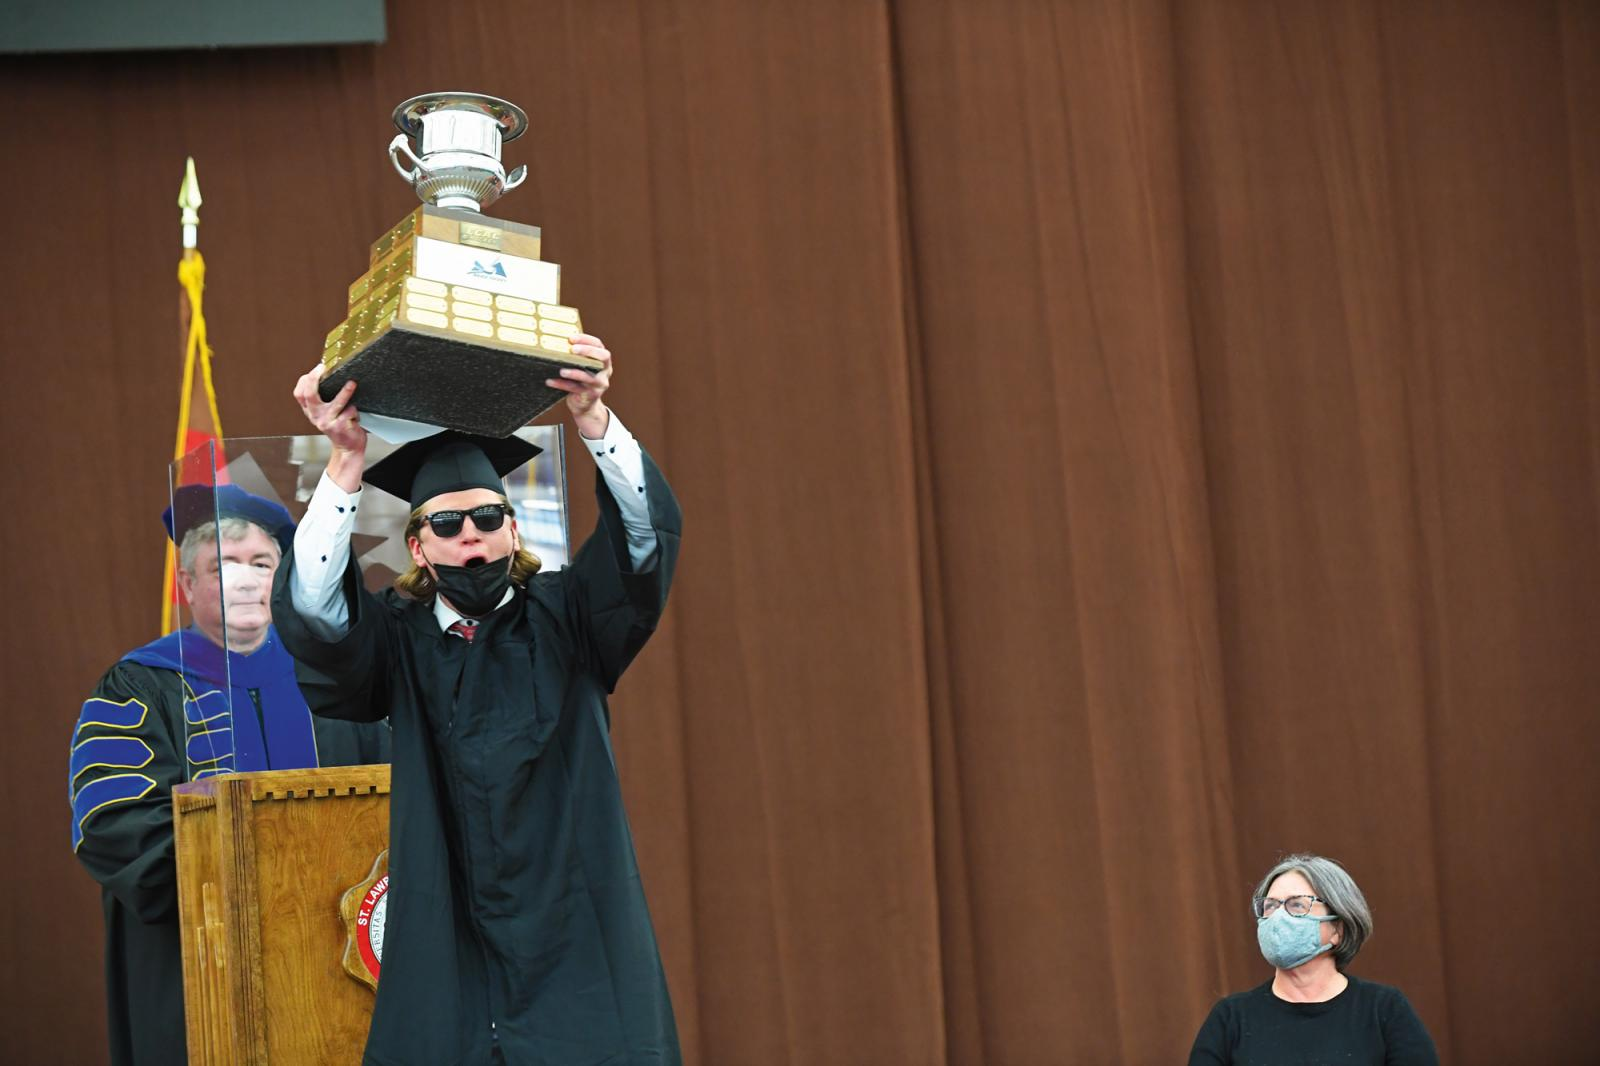 Hockey player lifting ECAC Men's Hockey Trophy at Commencement